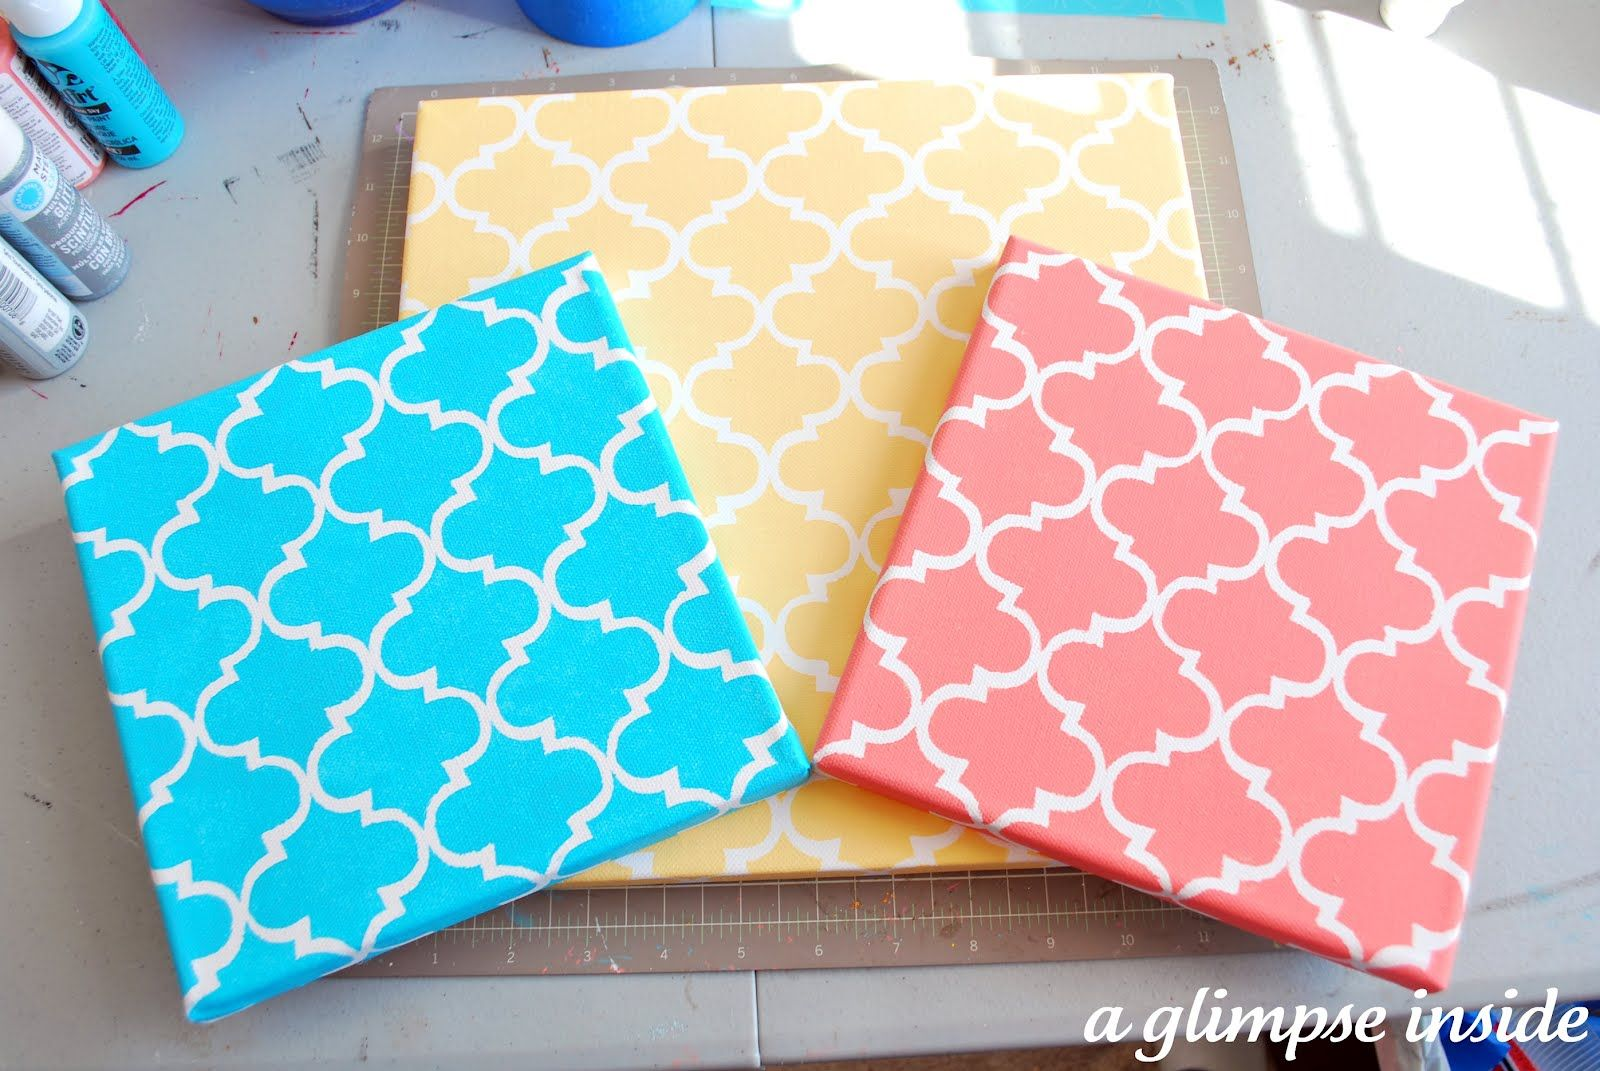 A Glimpse Inside: Nursery Project 1: Stenciled Initial Canvases